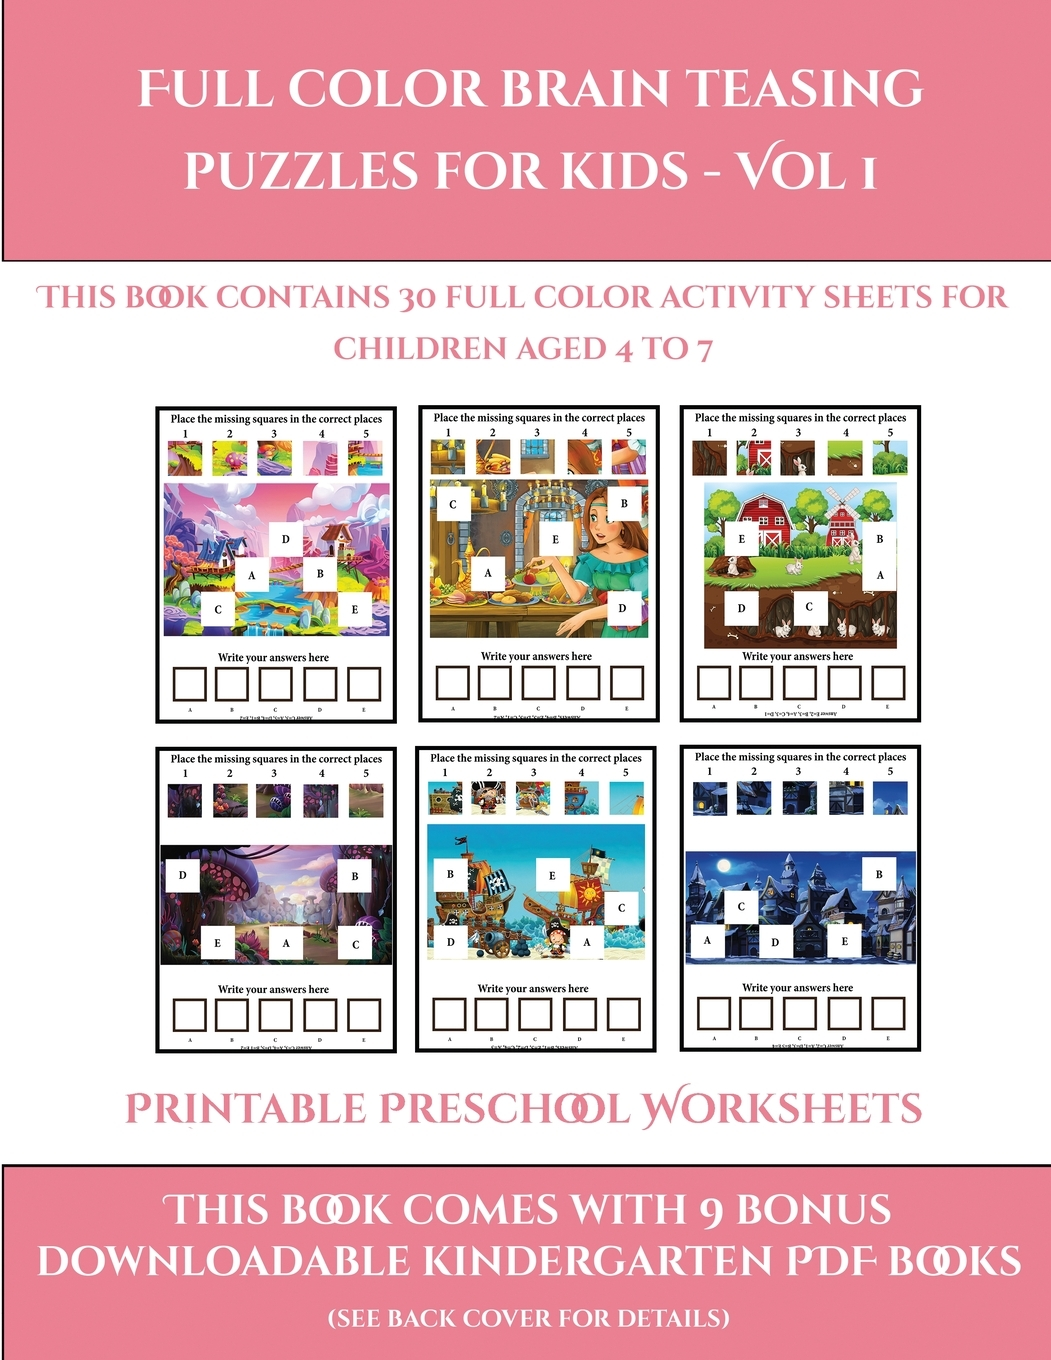 Printable Preschool Worksheets Printable Preschool